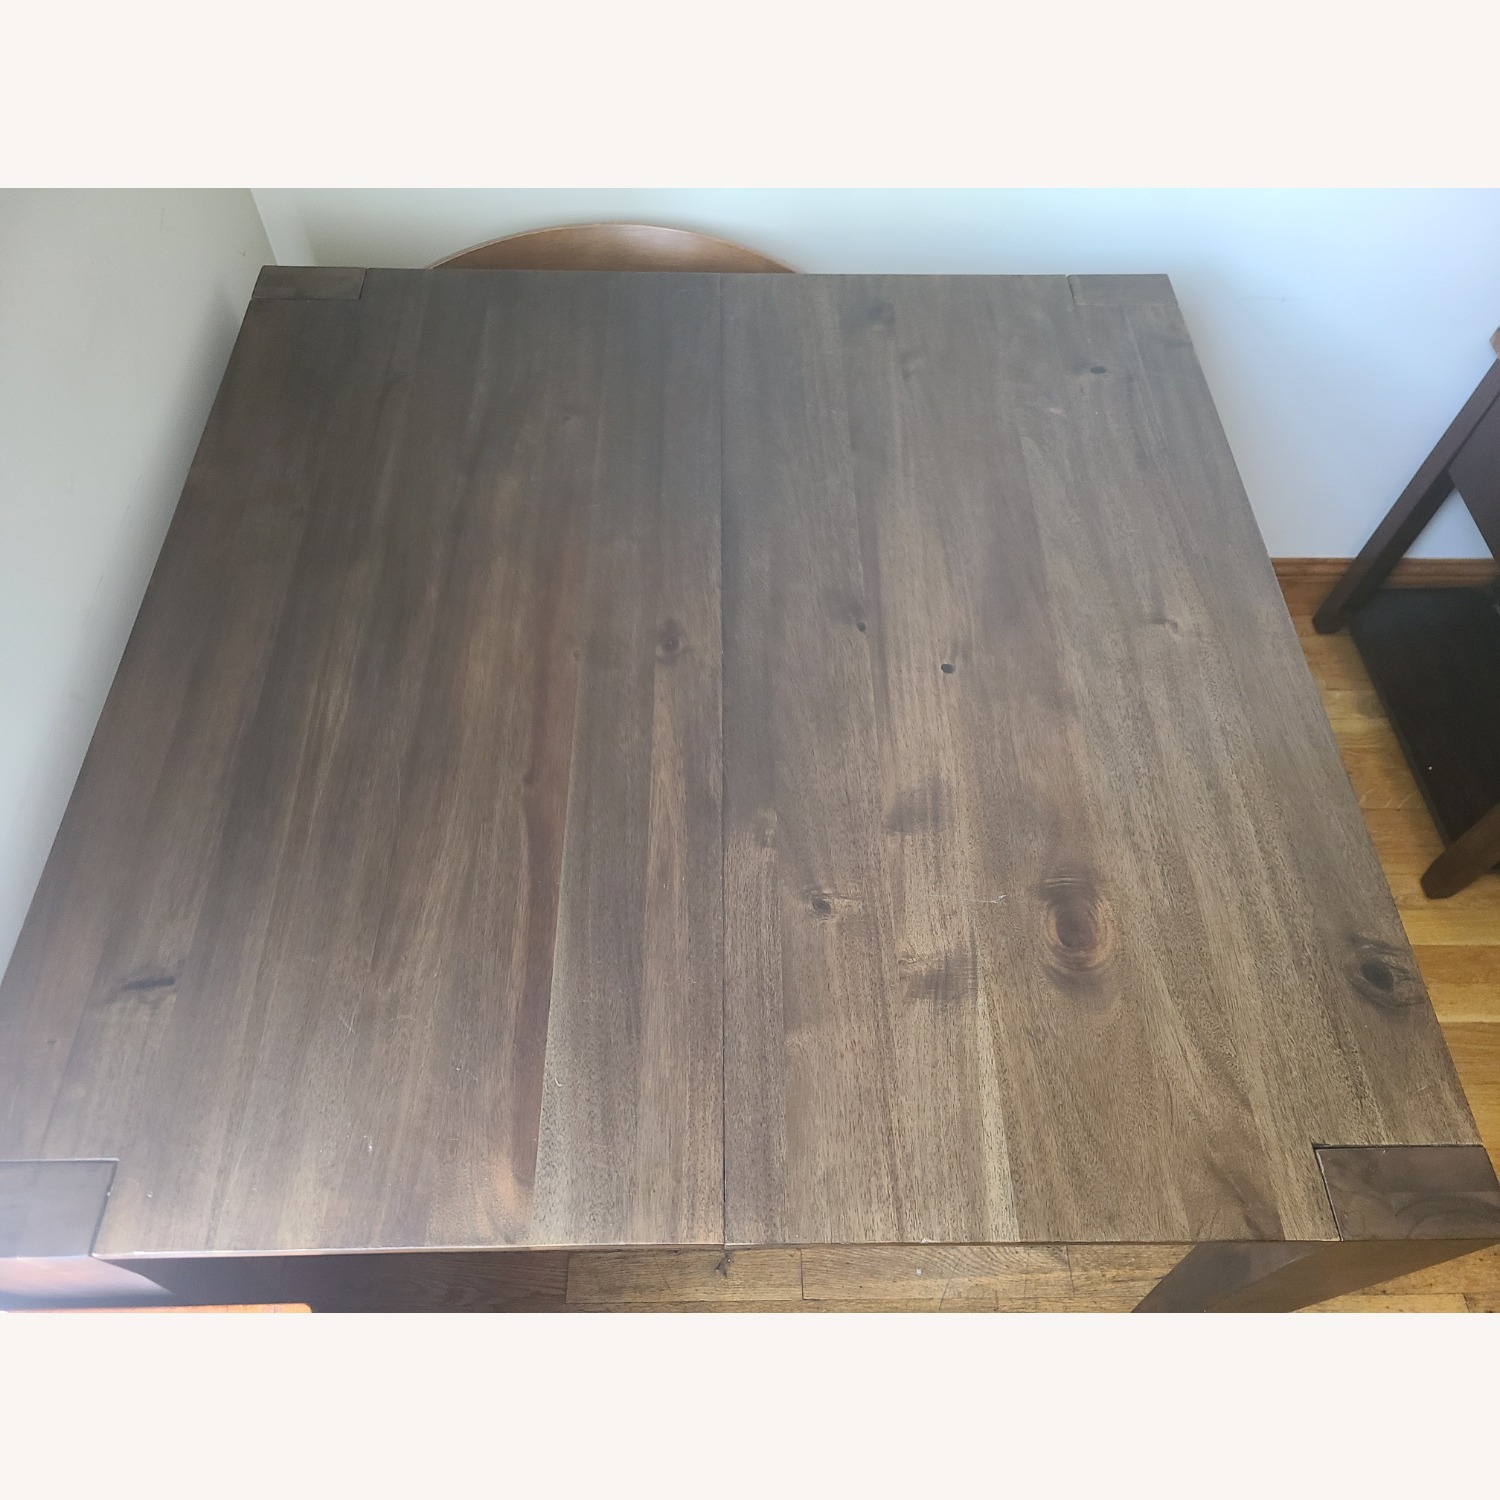 West Elm Solid Wood Dining Table - image-4